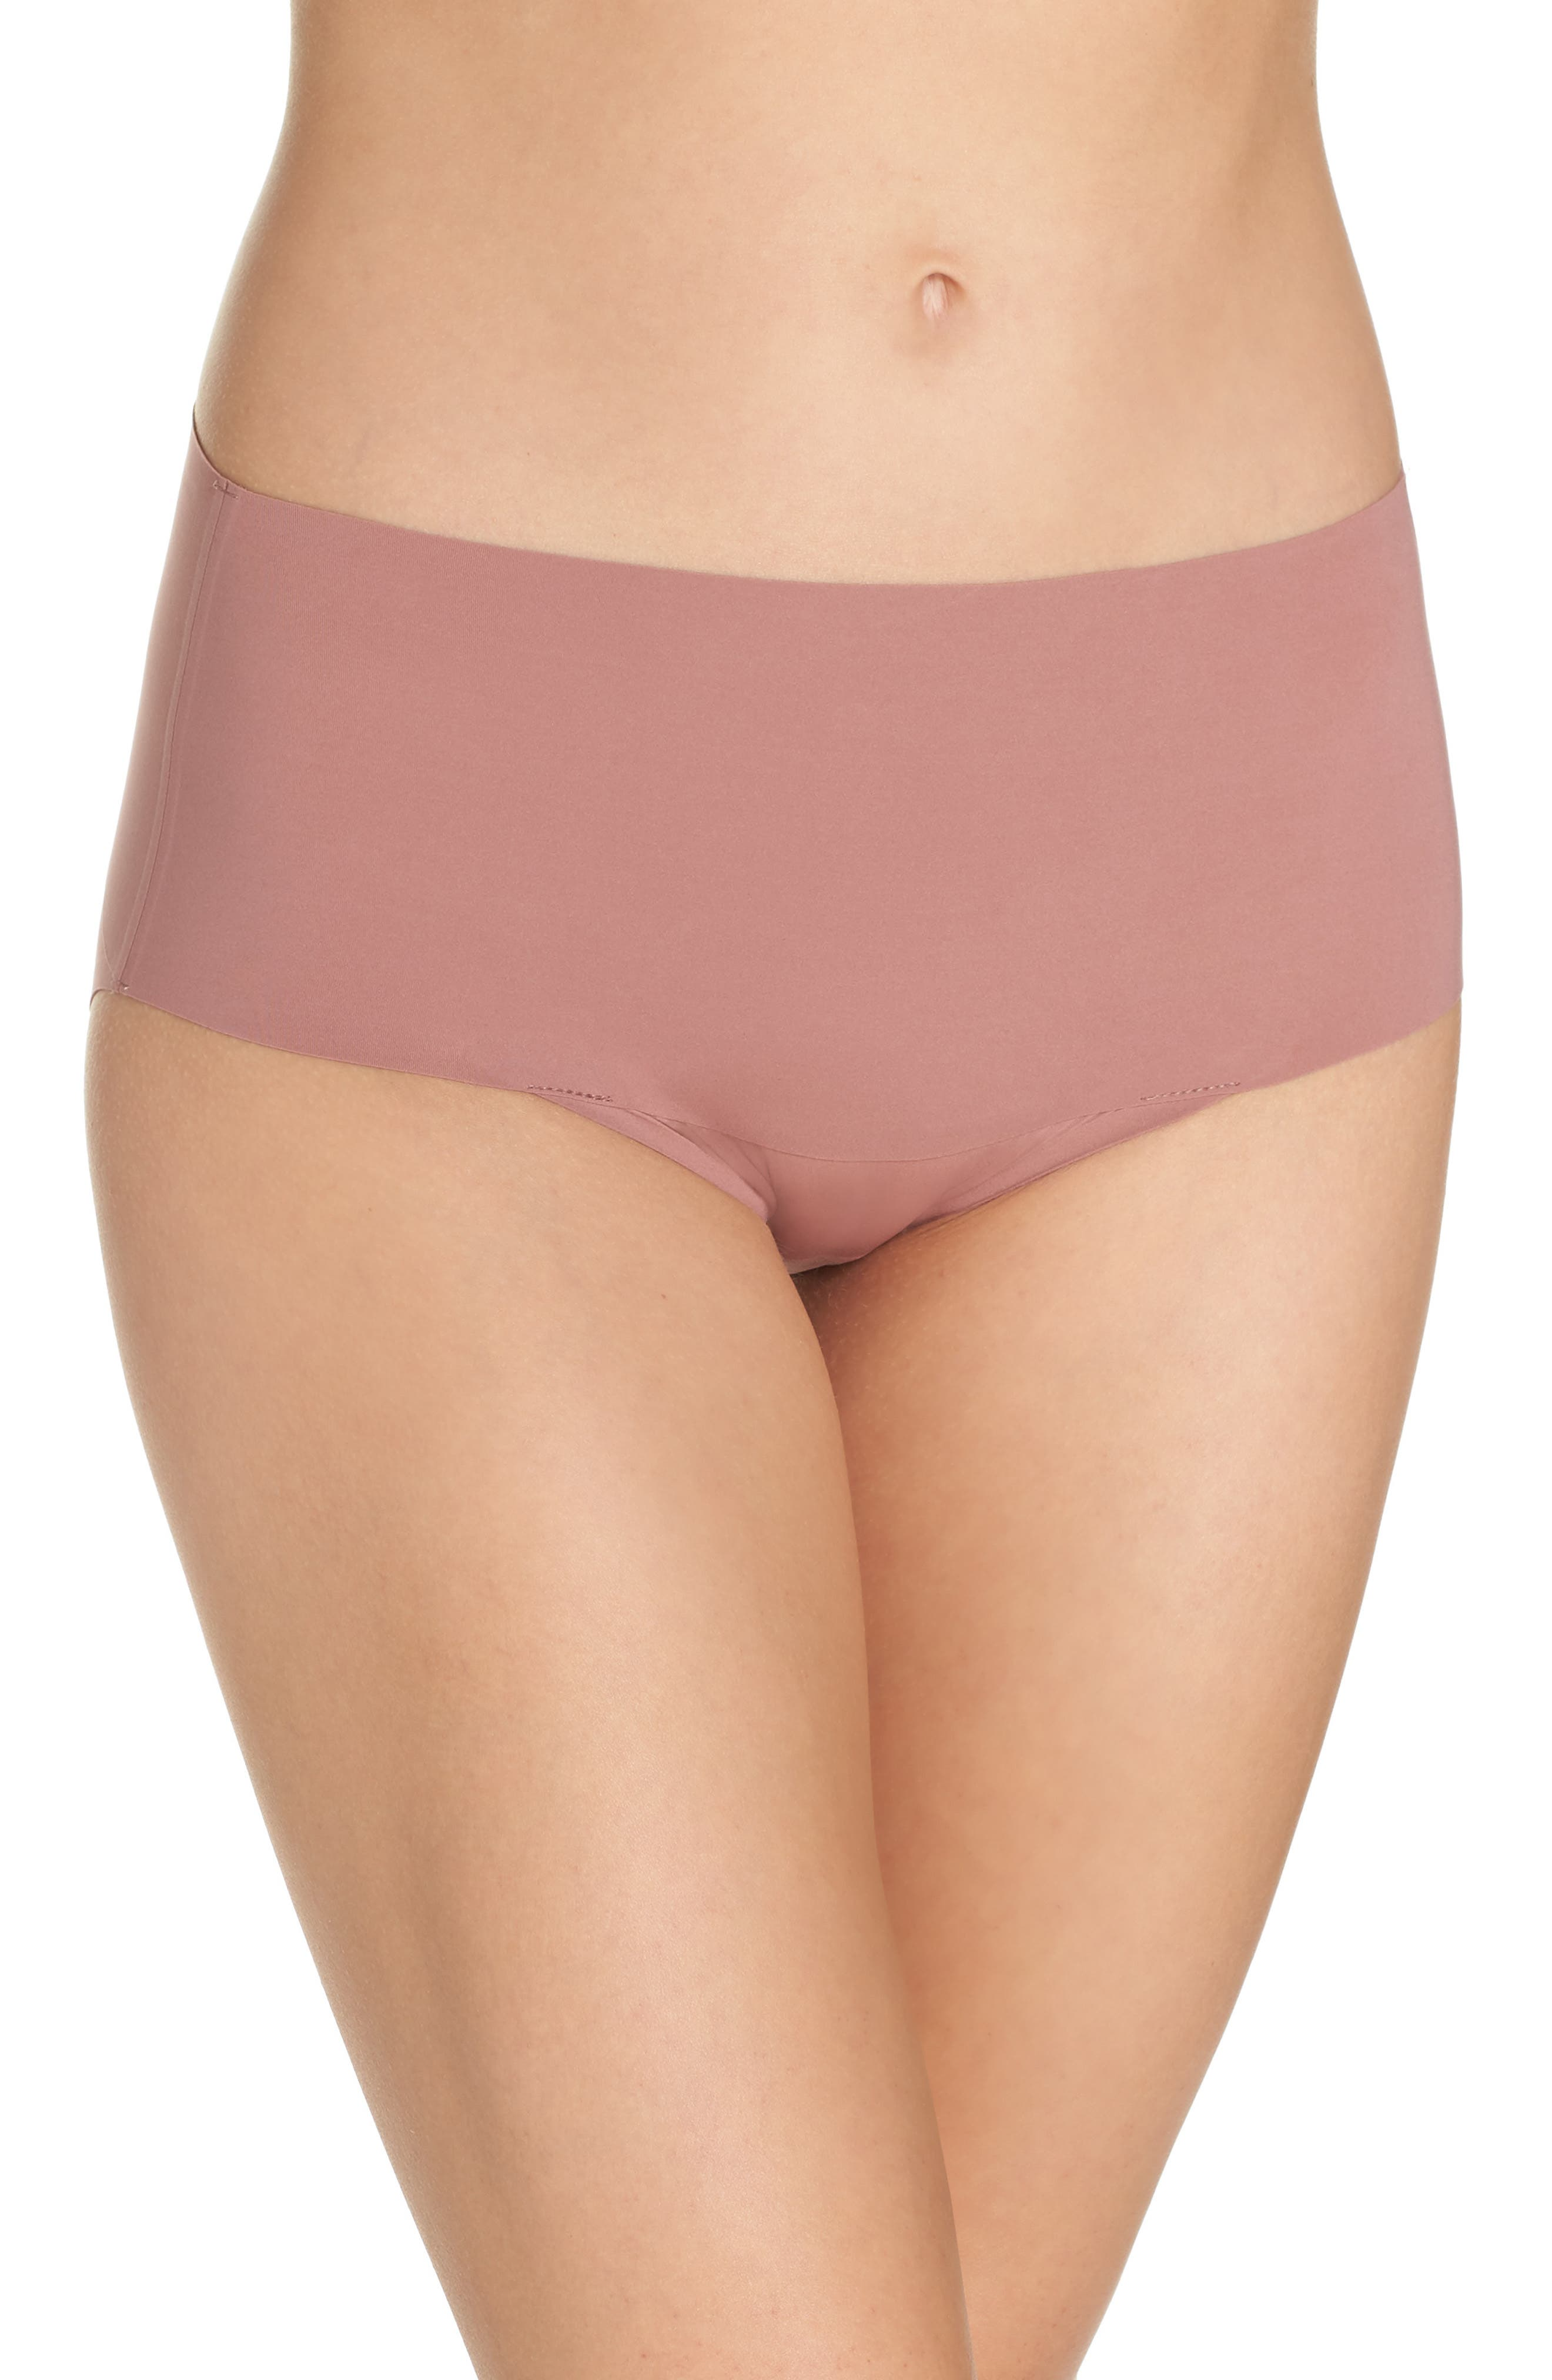 Undie-tectable Briefs,                             Main thumbnail 1, color,                             657